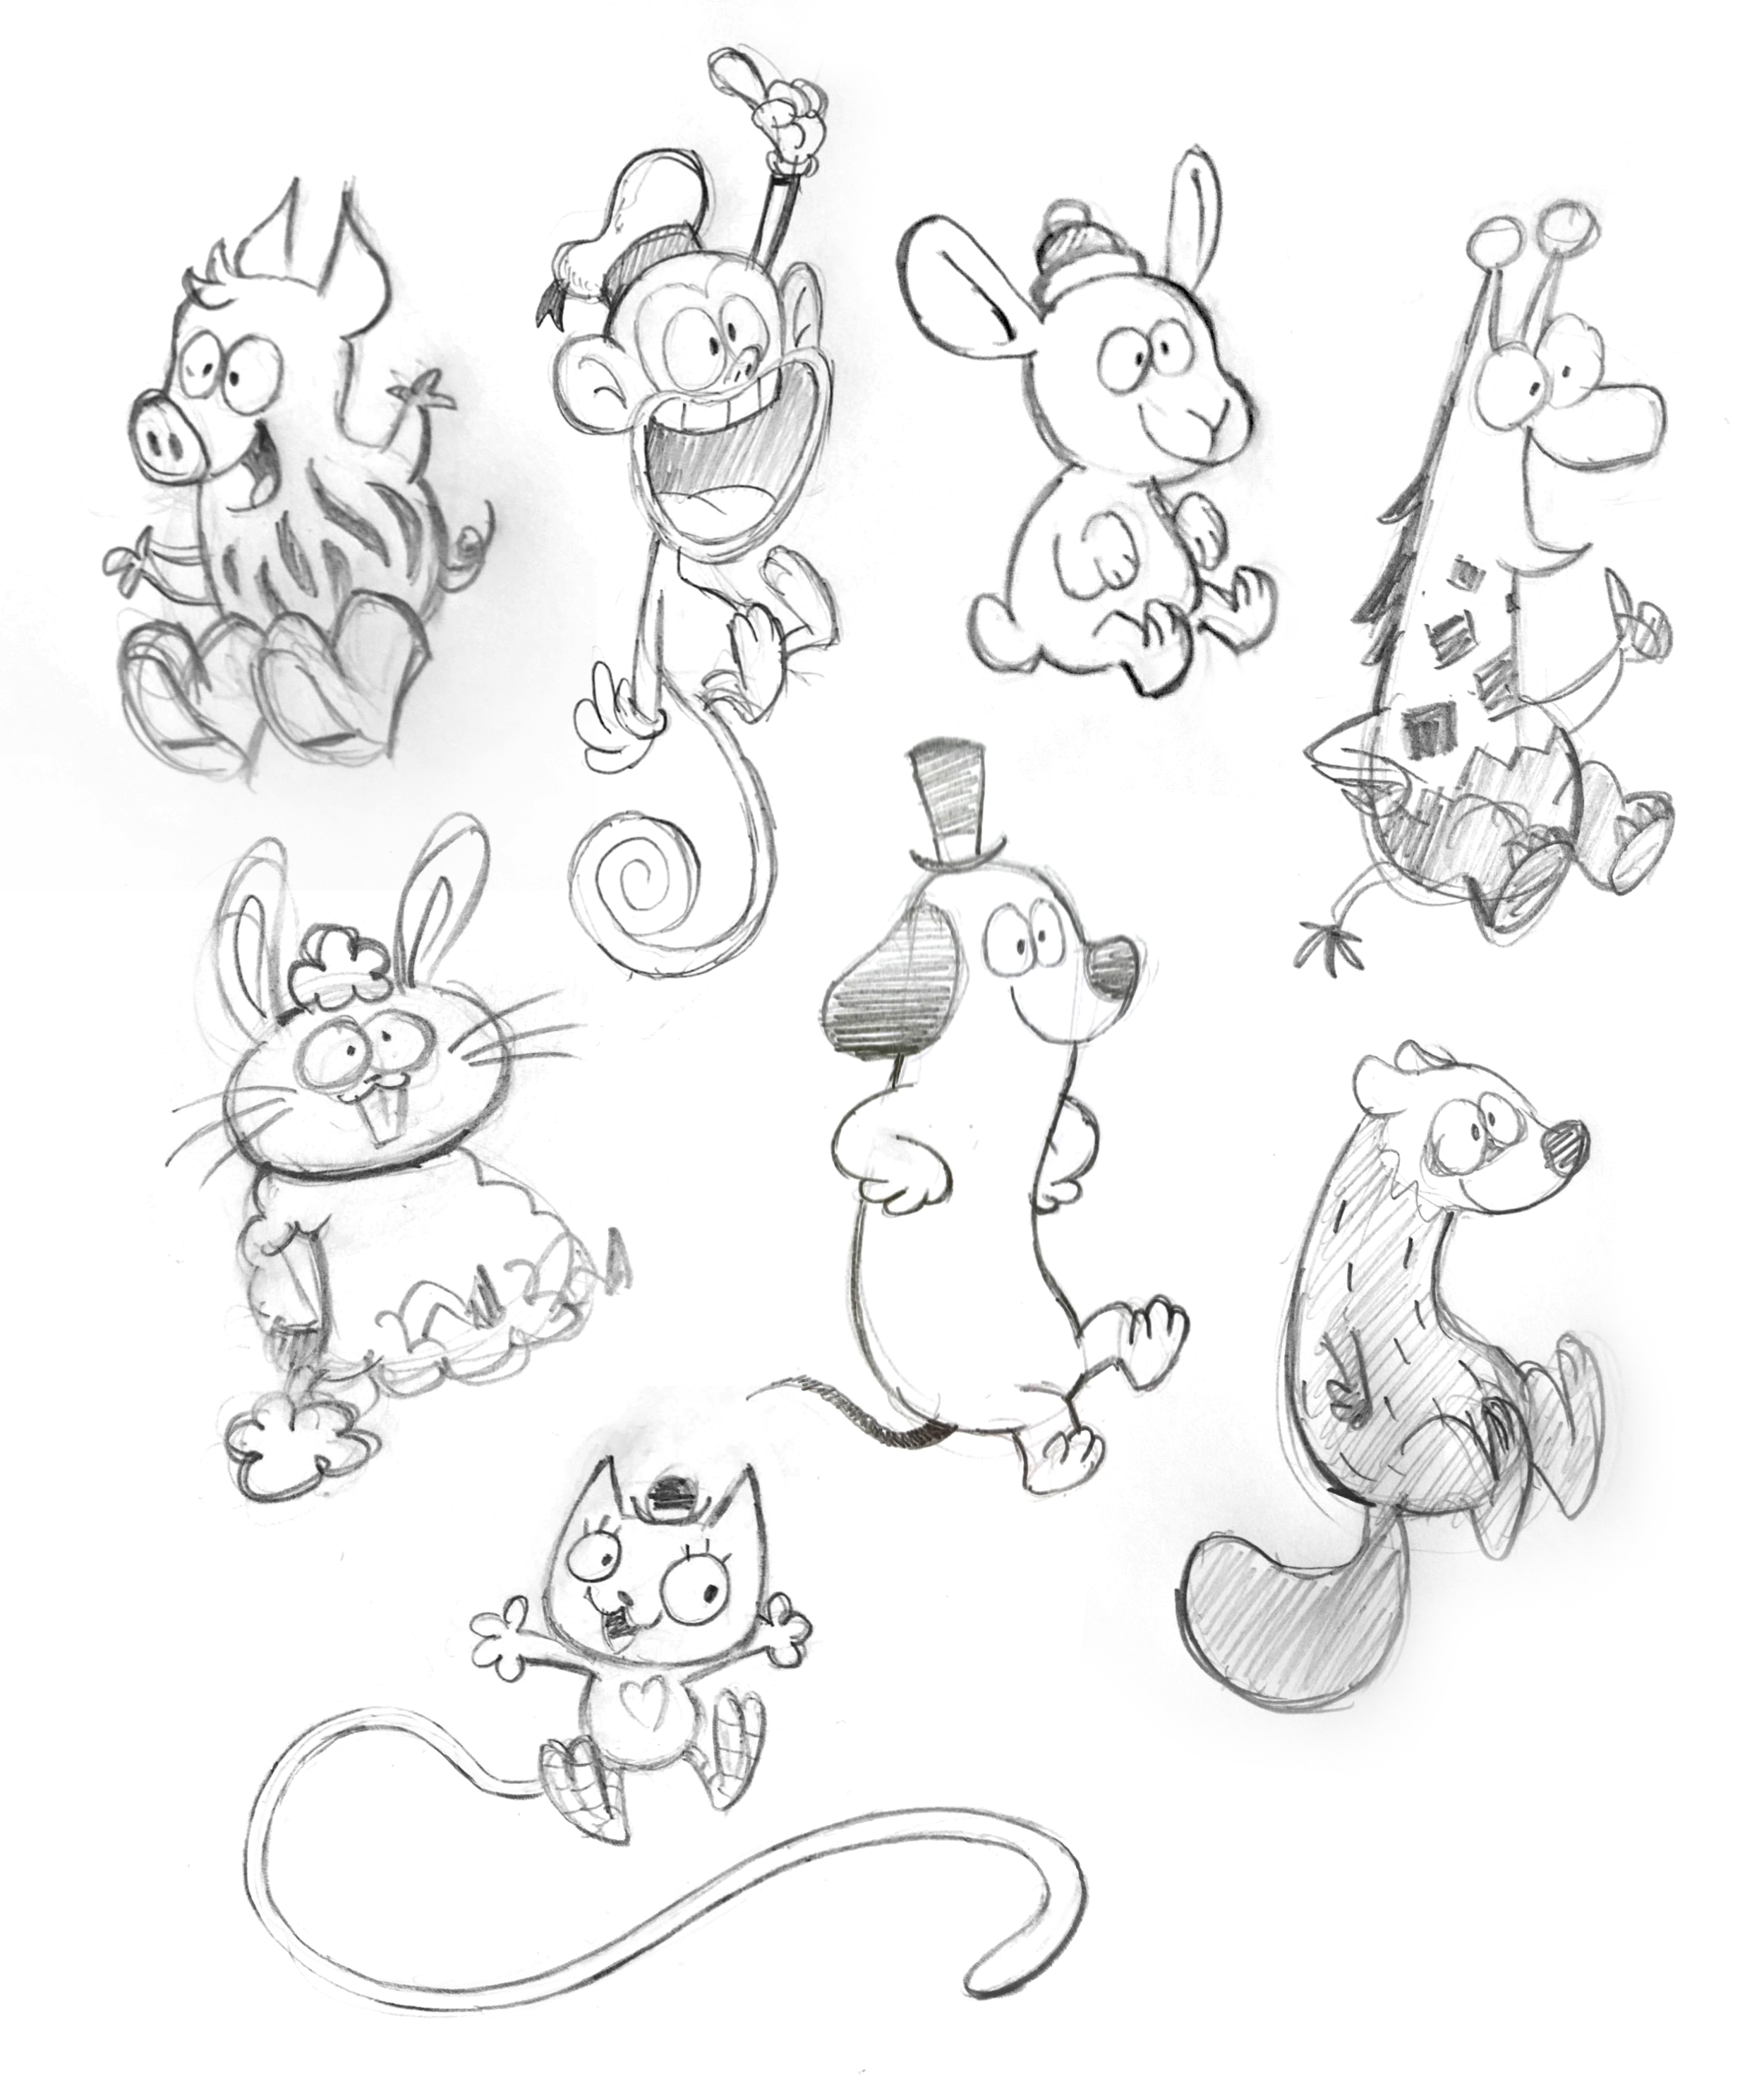 Imaginary Friend Scribbles 1.png